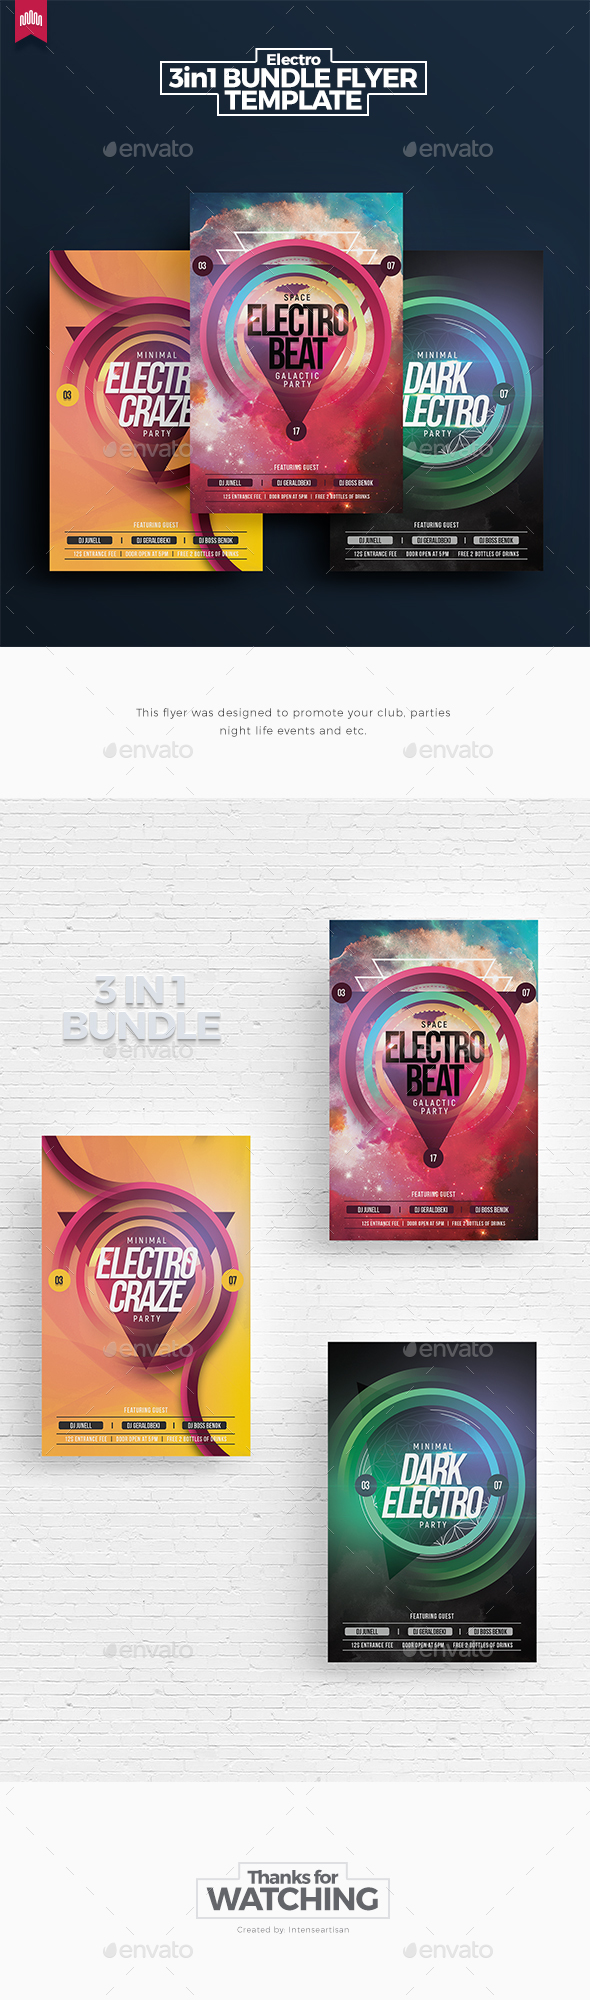 Electro Bundle 1 - Flyer Template - Clubs & Parties Events